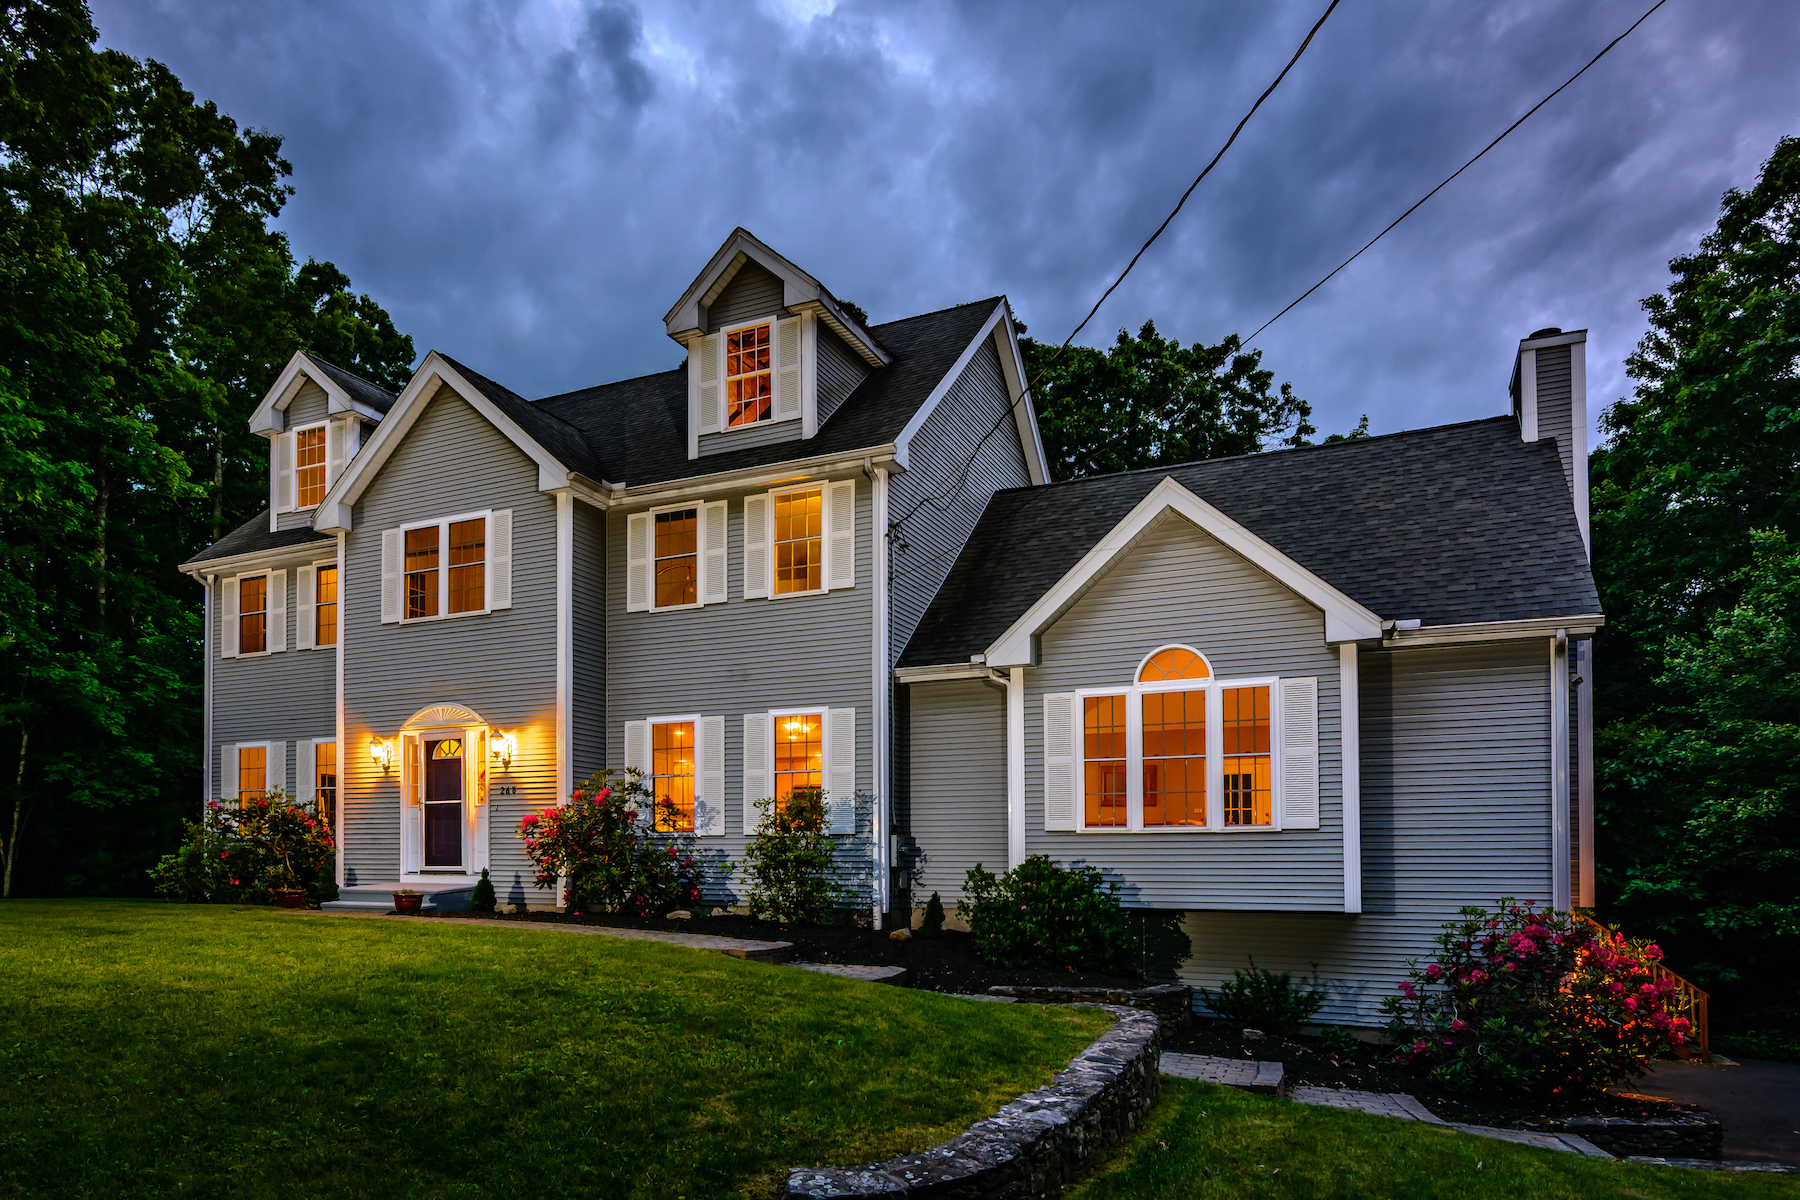 Single Family Homes for Sale at Lovely Open Concept Colonial 268 North Street Upton, Massachusetts 01568 United States